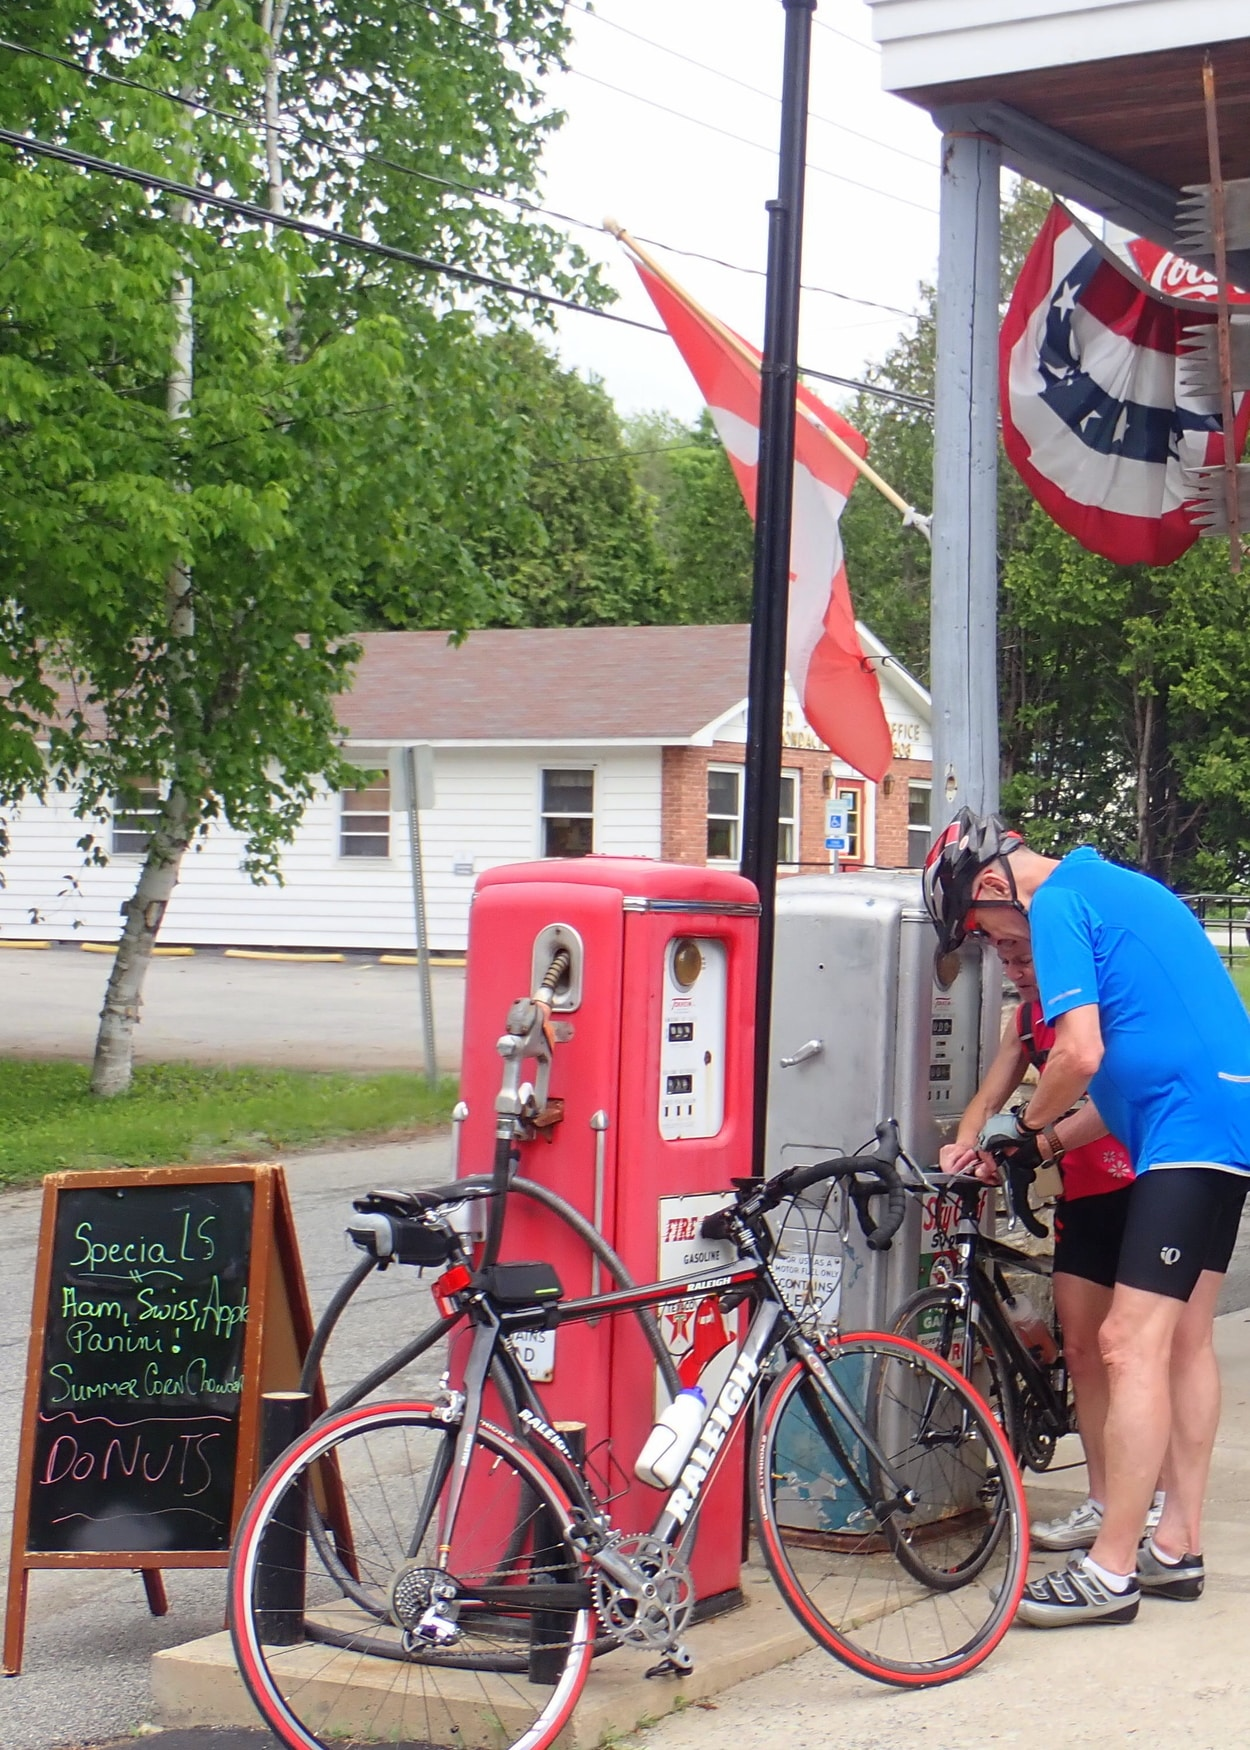 man with his bike next to the gas pumps at the Adirondack General Store in Schroon Lake